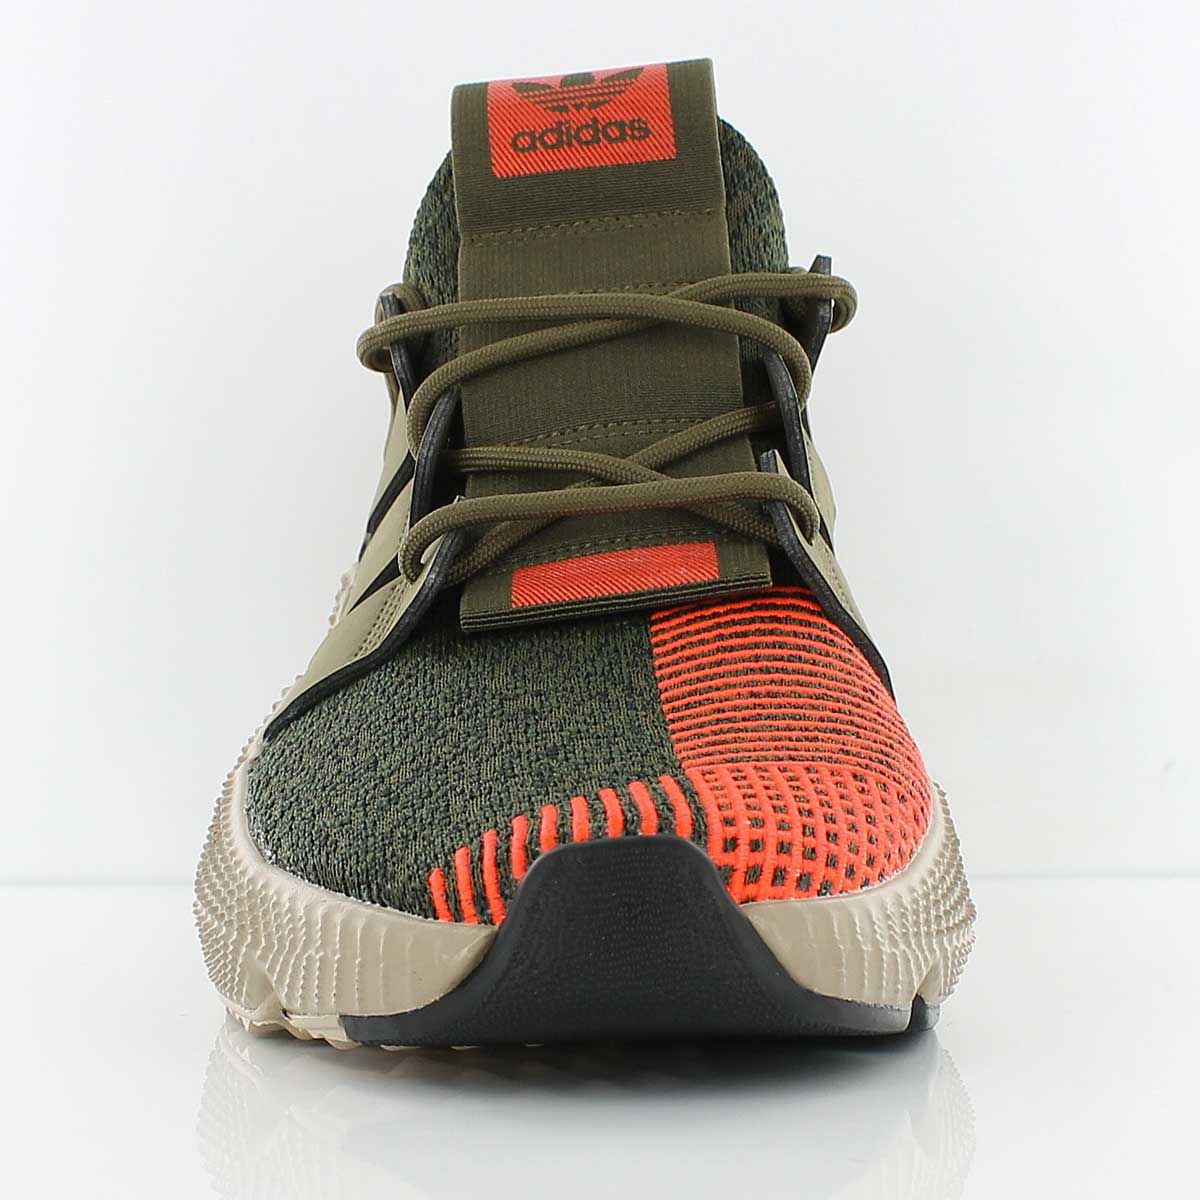 adidas PROPHERE TRACE OLIVE F17TRACE OLIVE F17solar red